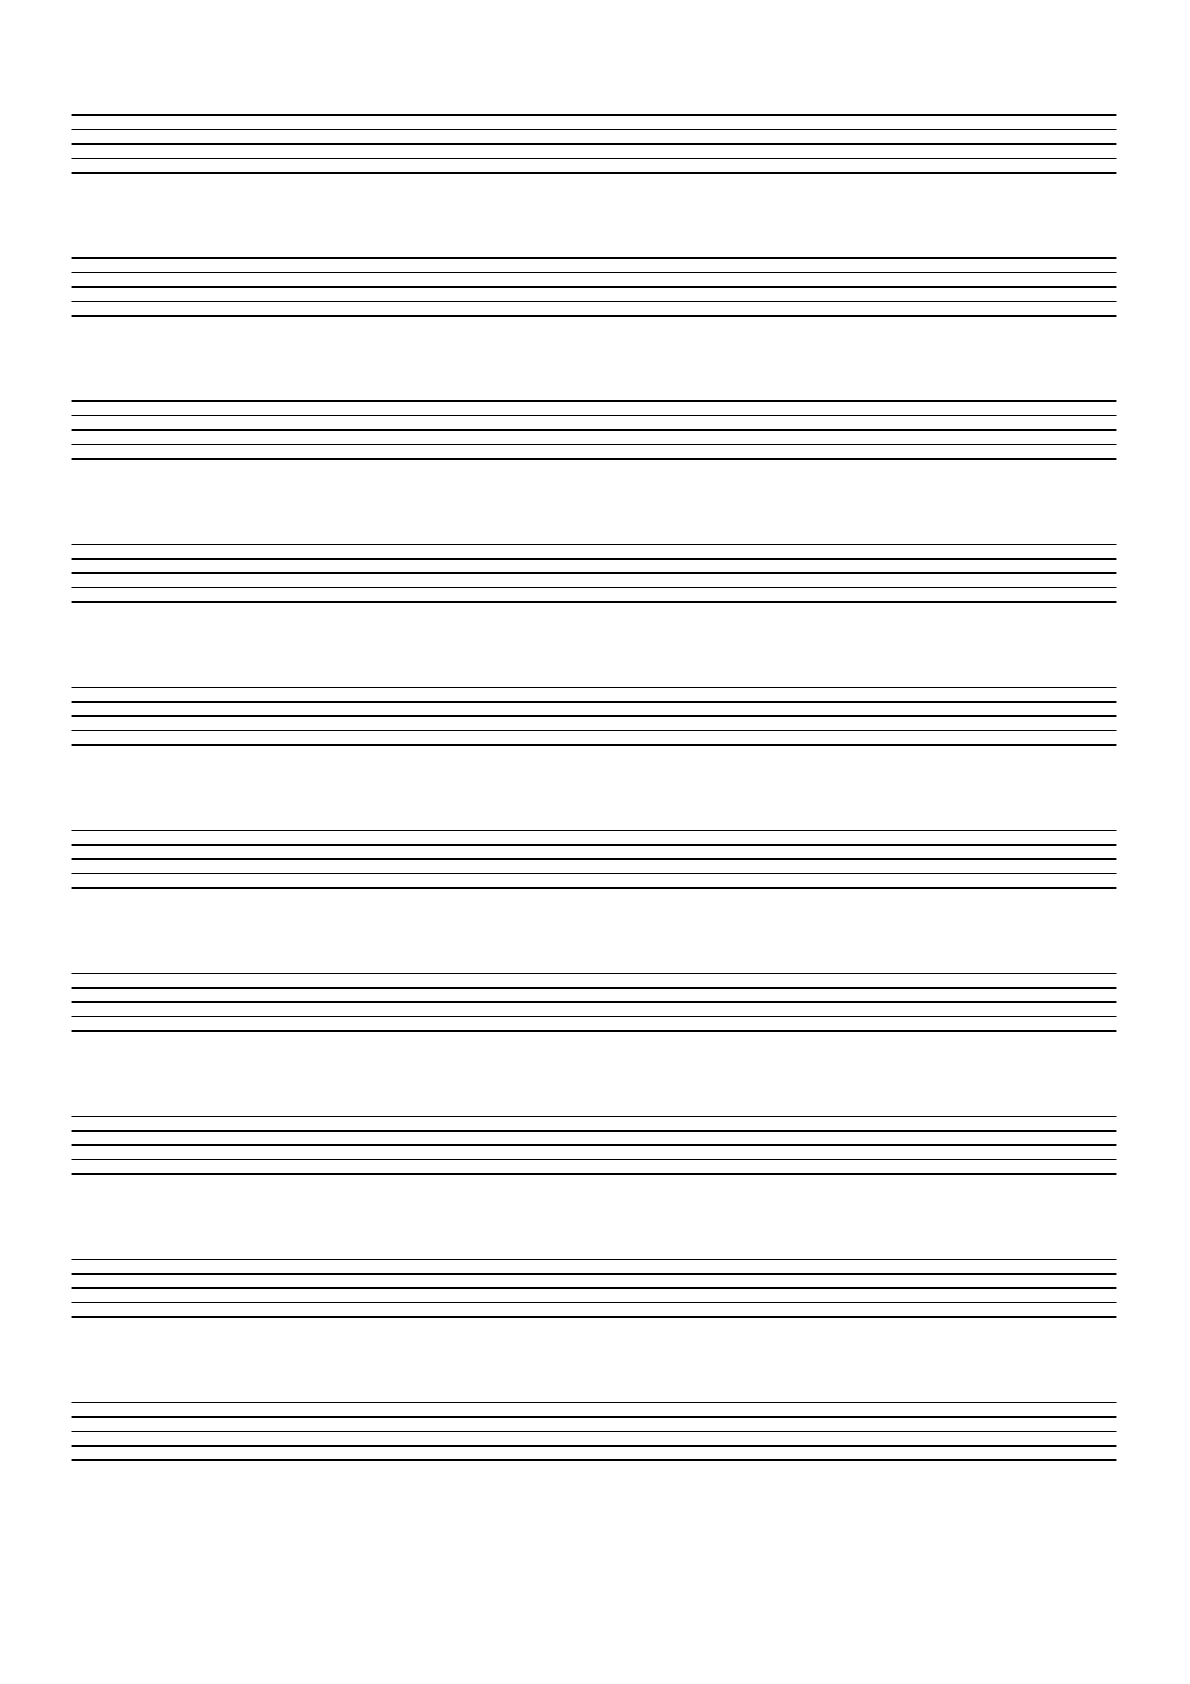 Music Paper With Ten Staves On A4 Sized Paper In Portrait